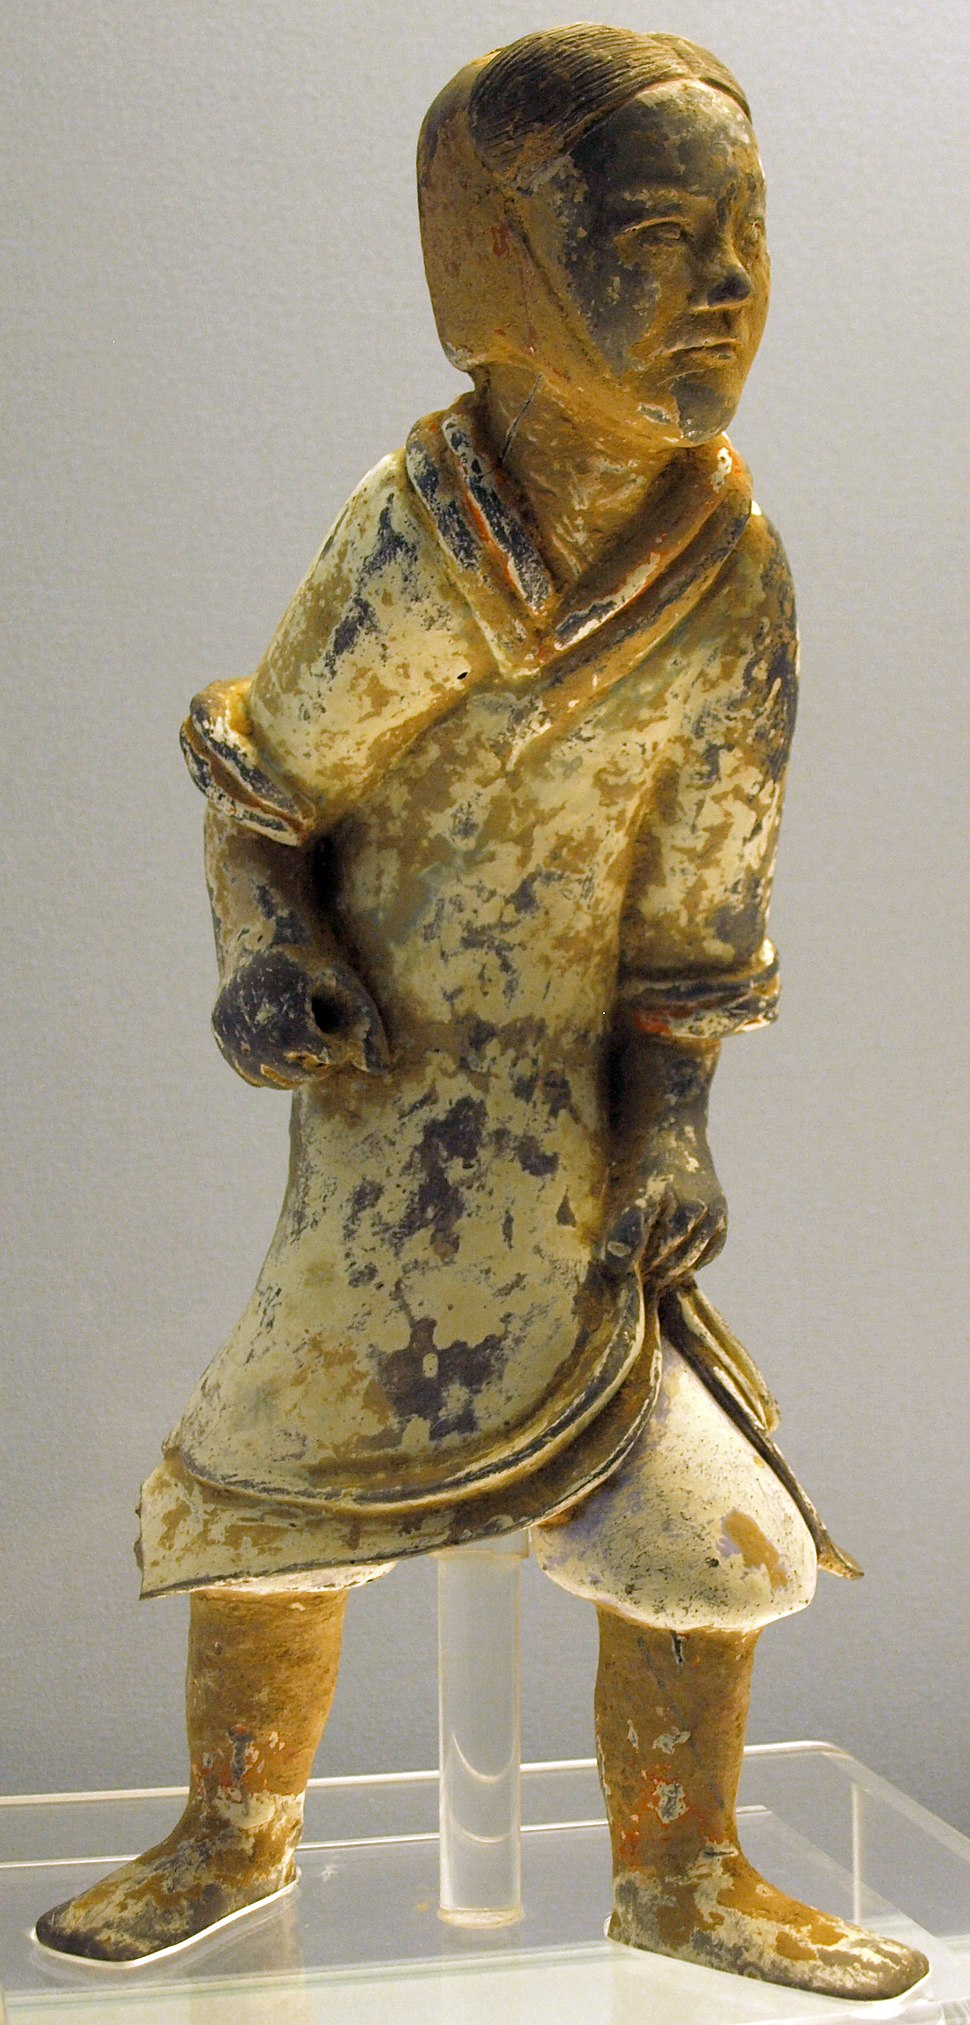 EasternHan-ColouredPotteryFigurine-ShanghaiMuseum-May27-08